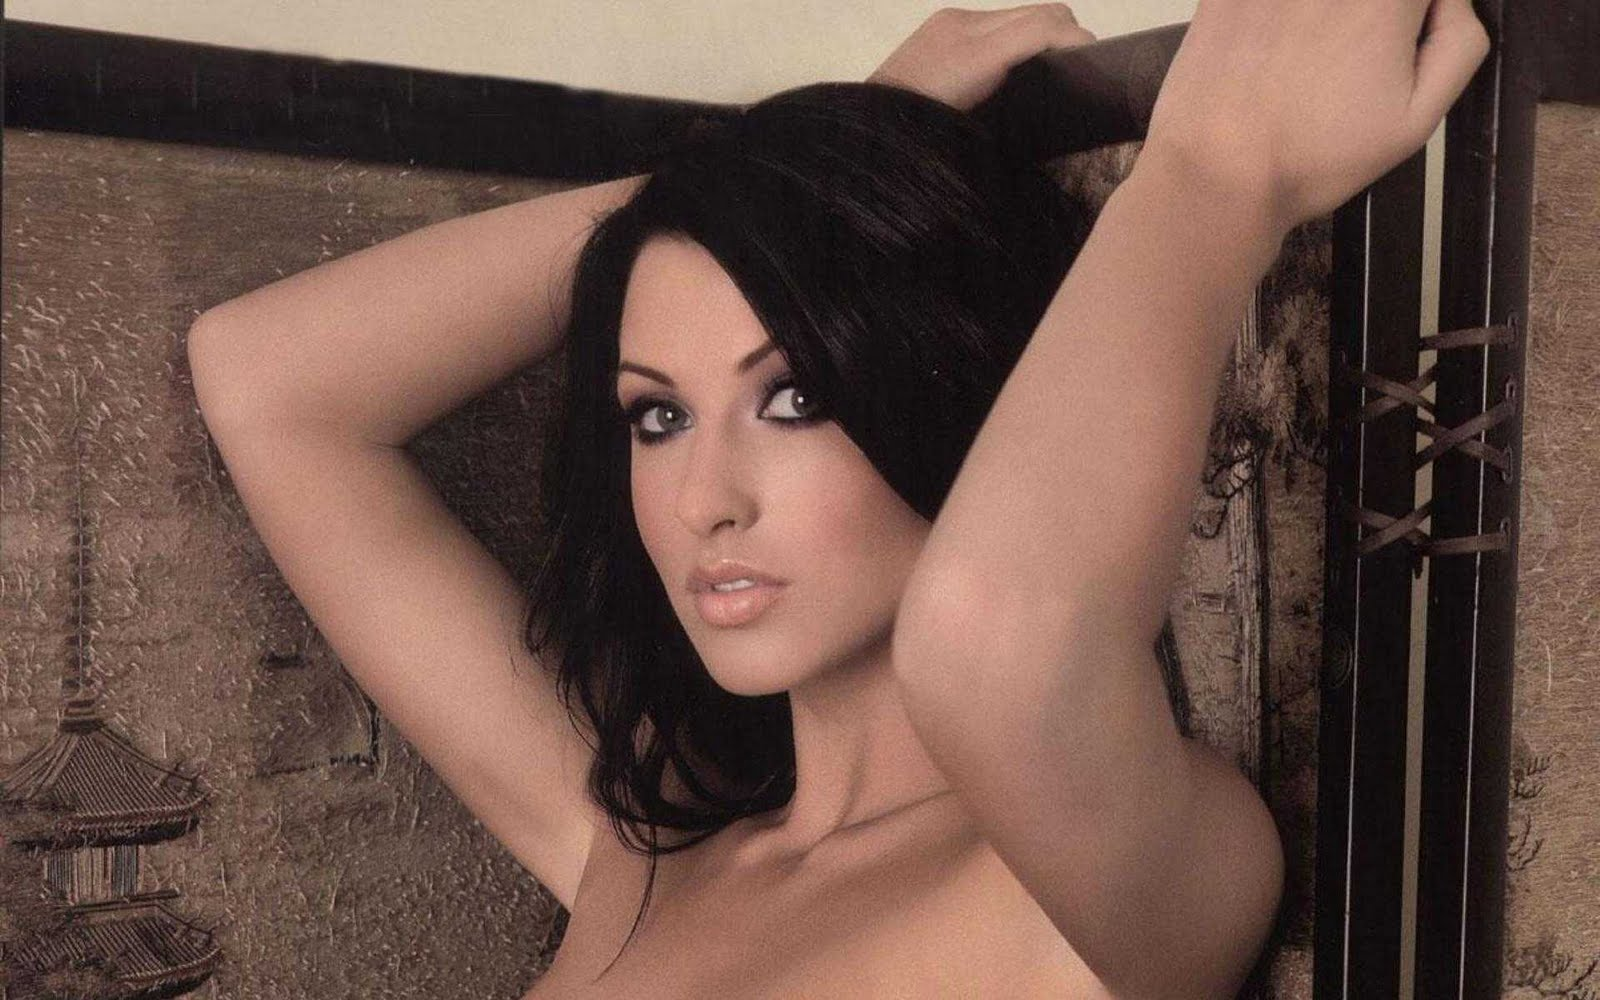 Alice goodwin for nuts 6